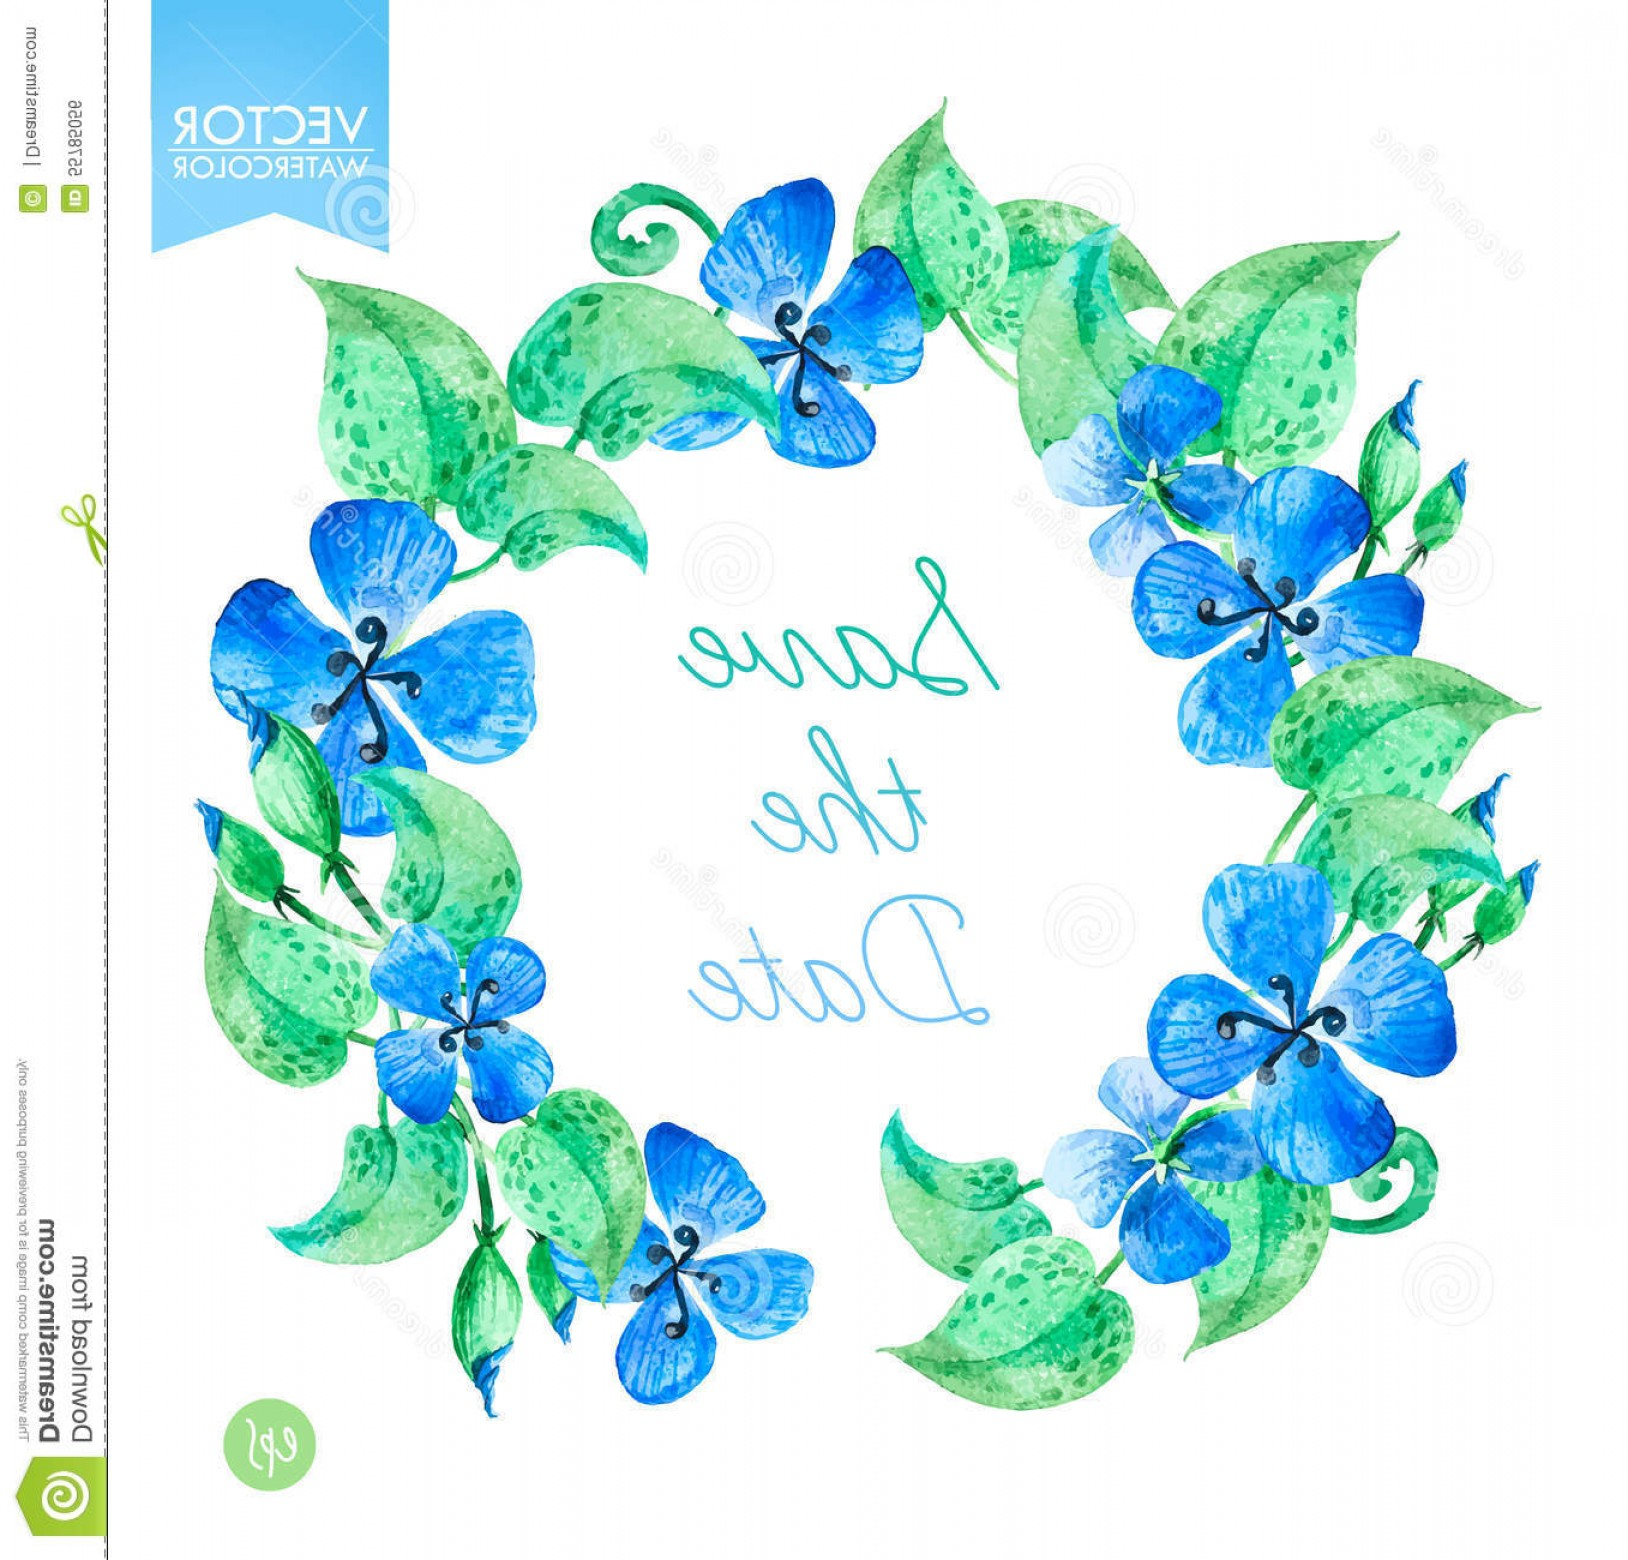 Summer Wreath Free Vector Watercolor: Vector Watercolor Floral Wreaths With Blue Summer Flowers Save The Date Template Illustration